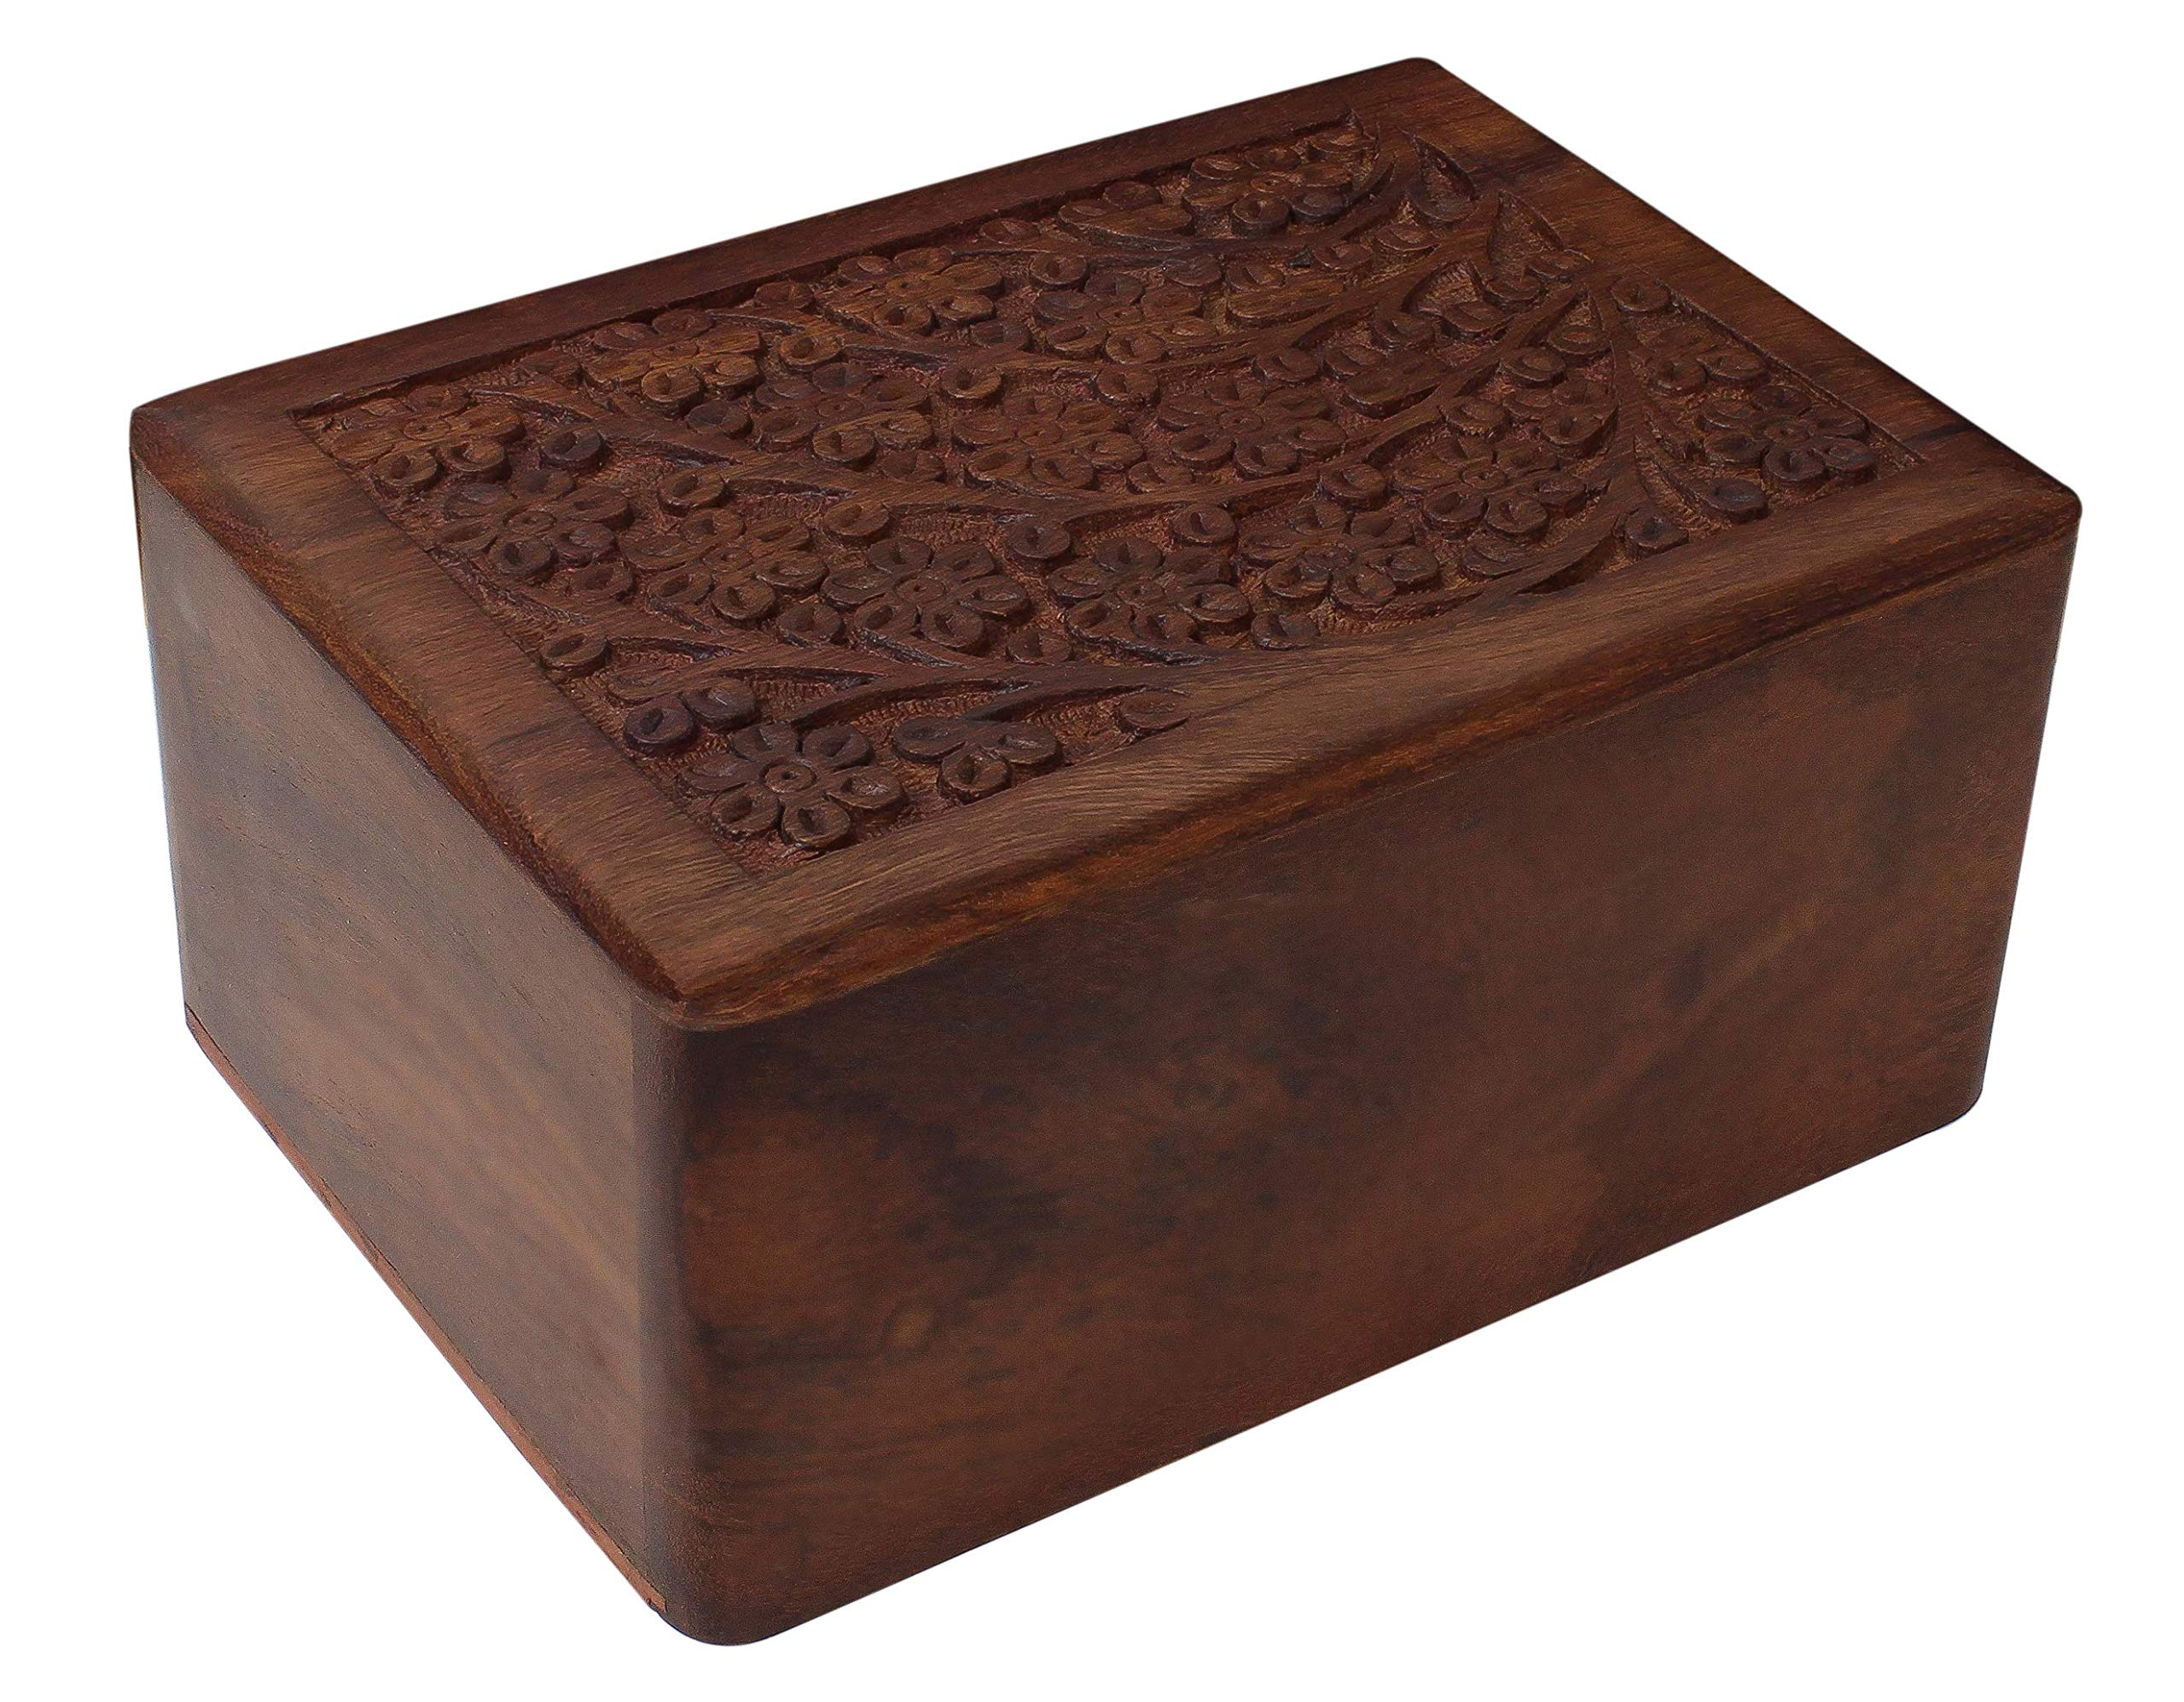 Tree of Life Hand-Carved Rosewood Urn Box - Medium by Bogati